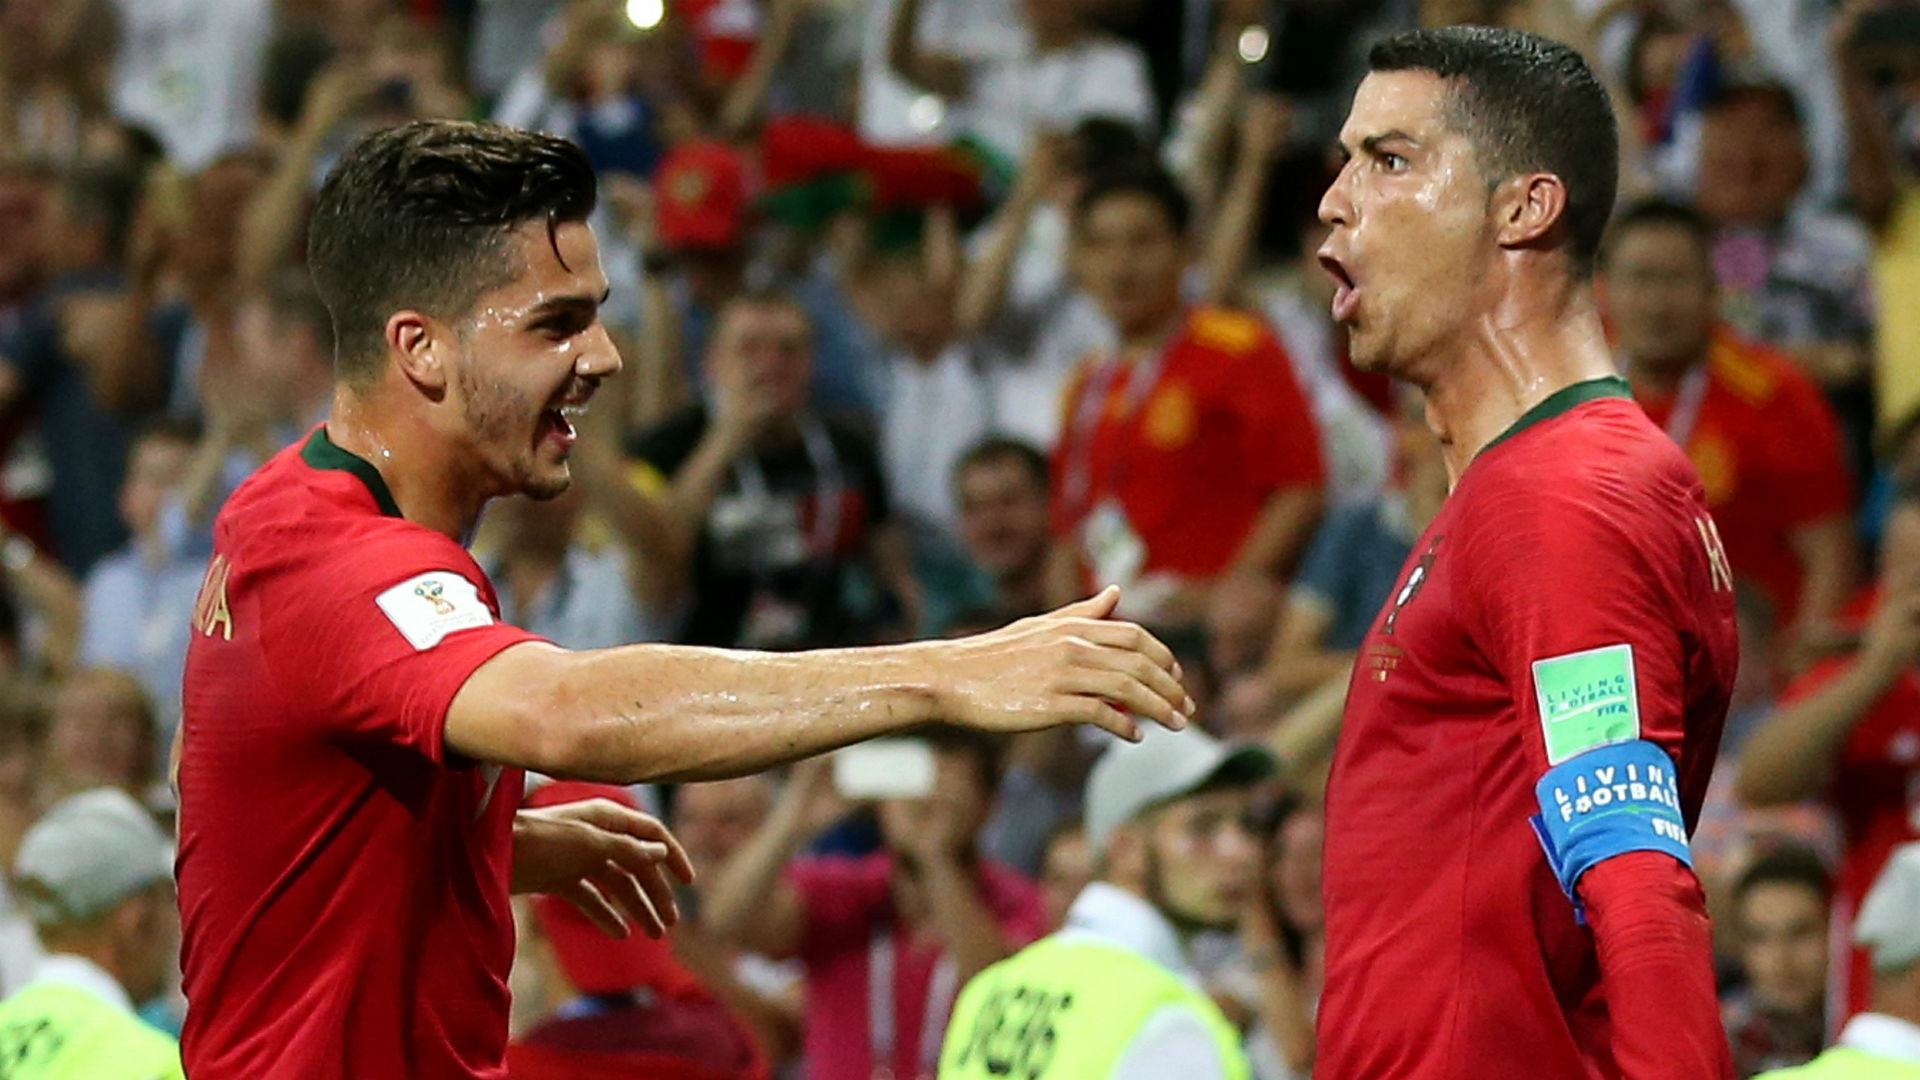 Cristiano Ronaldo's Portugal are not a one-man team - Fernando Santos